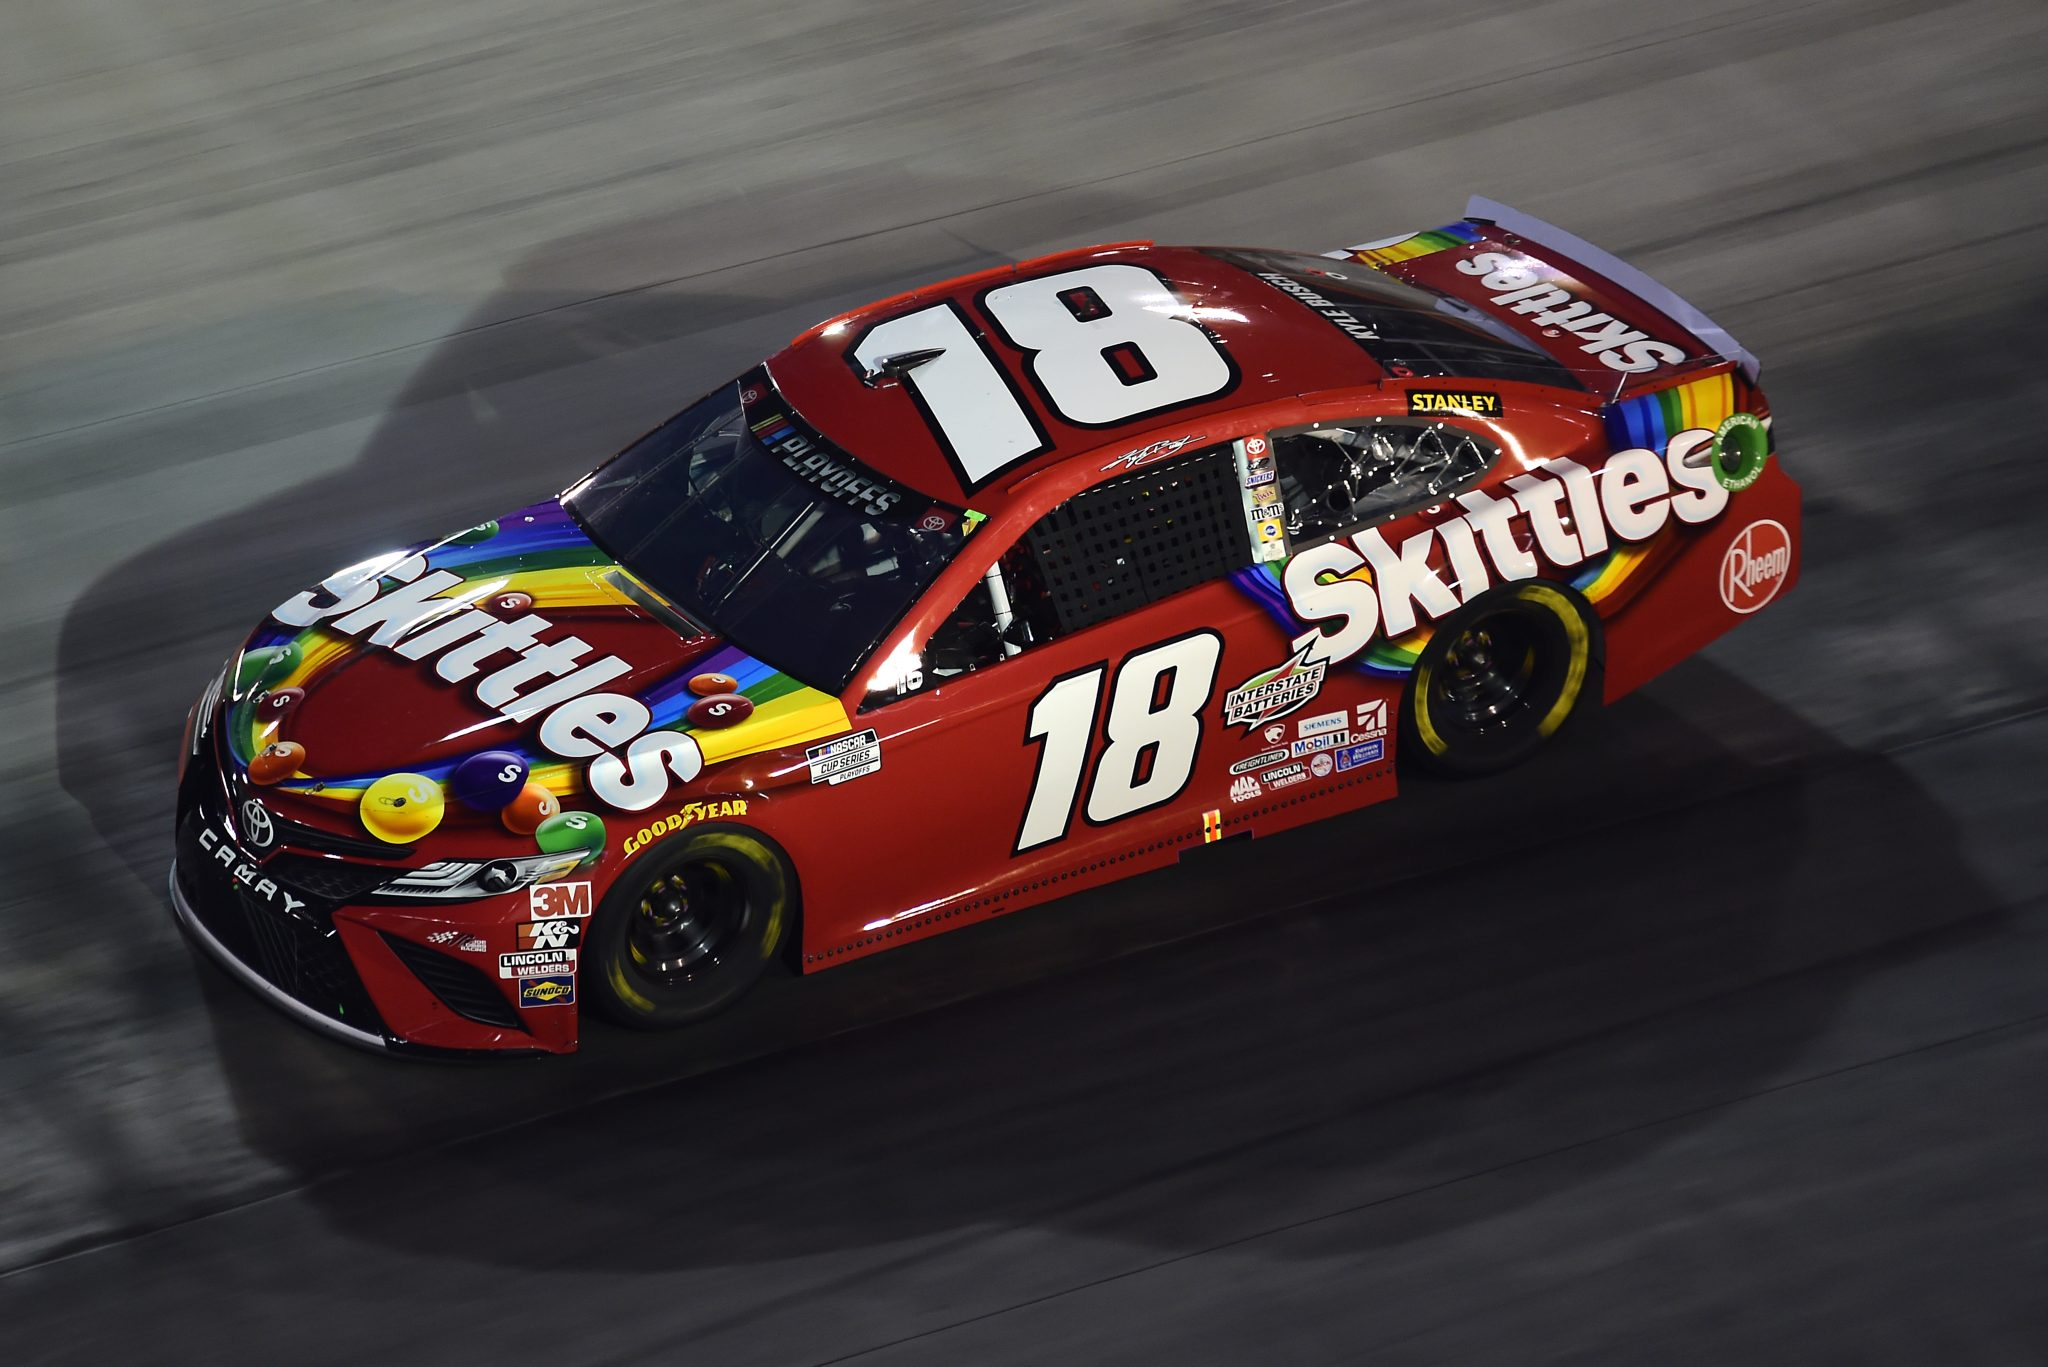 BRISTOL, TENNESSEE - SEPTEMBER 19: Kyle Busch, driver of the #18 Skittles Toyota, drives during the NASCAR Cup Series Bass Pro Shops Night Race at Bristol Motor Speedway on September 19, 2020 in Bristol, Tennessee. (Photo by Jared C. Tilton/Getty Images) | Getty Images